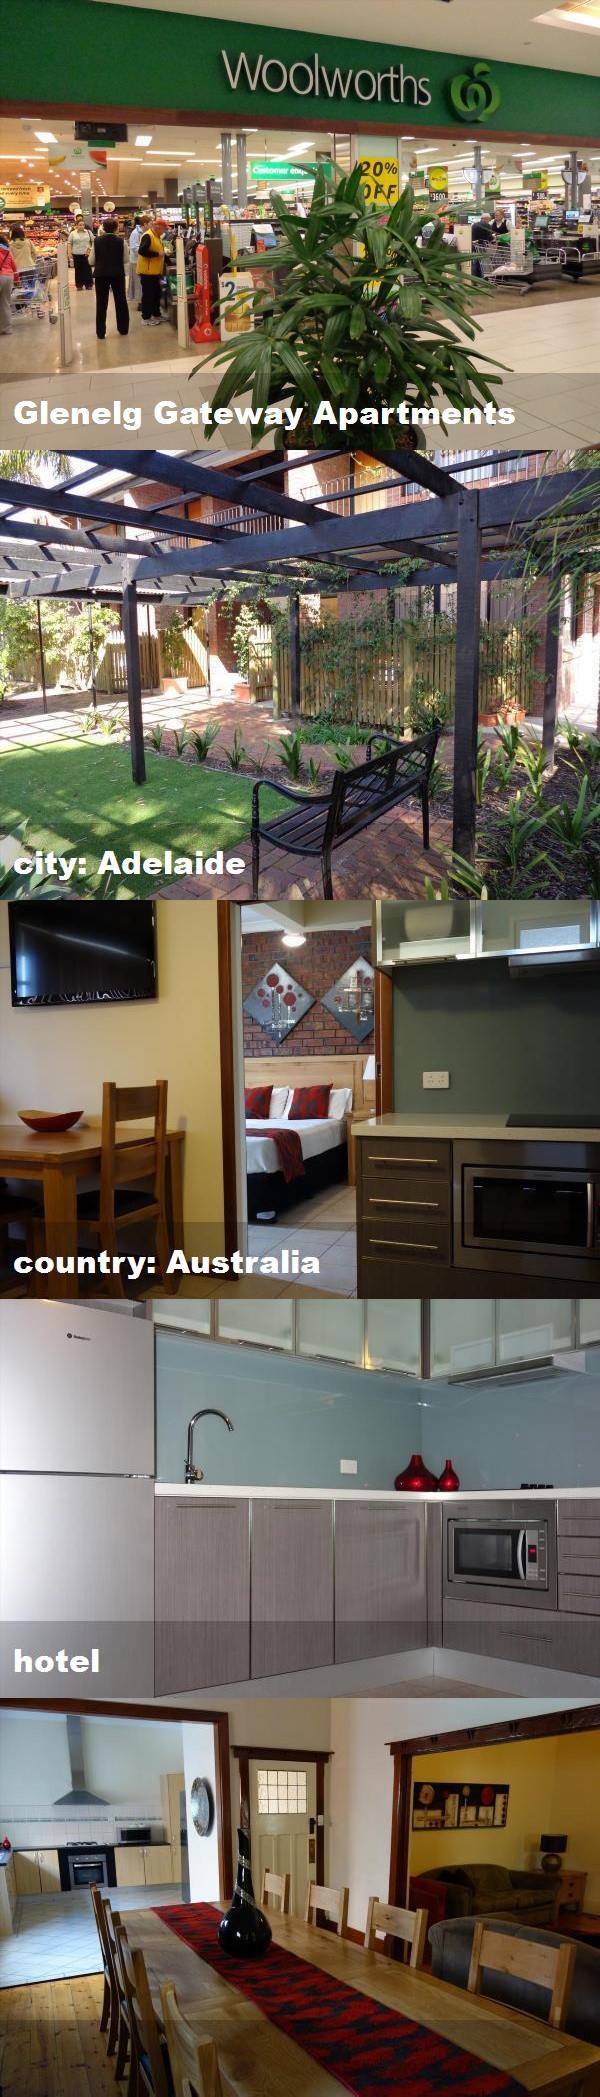 Glenelg Gateway Apartments, city: Adelaide, country ...